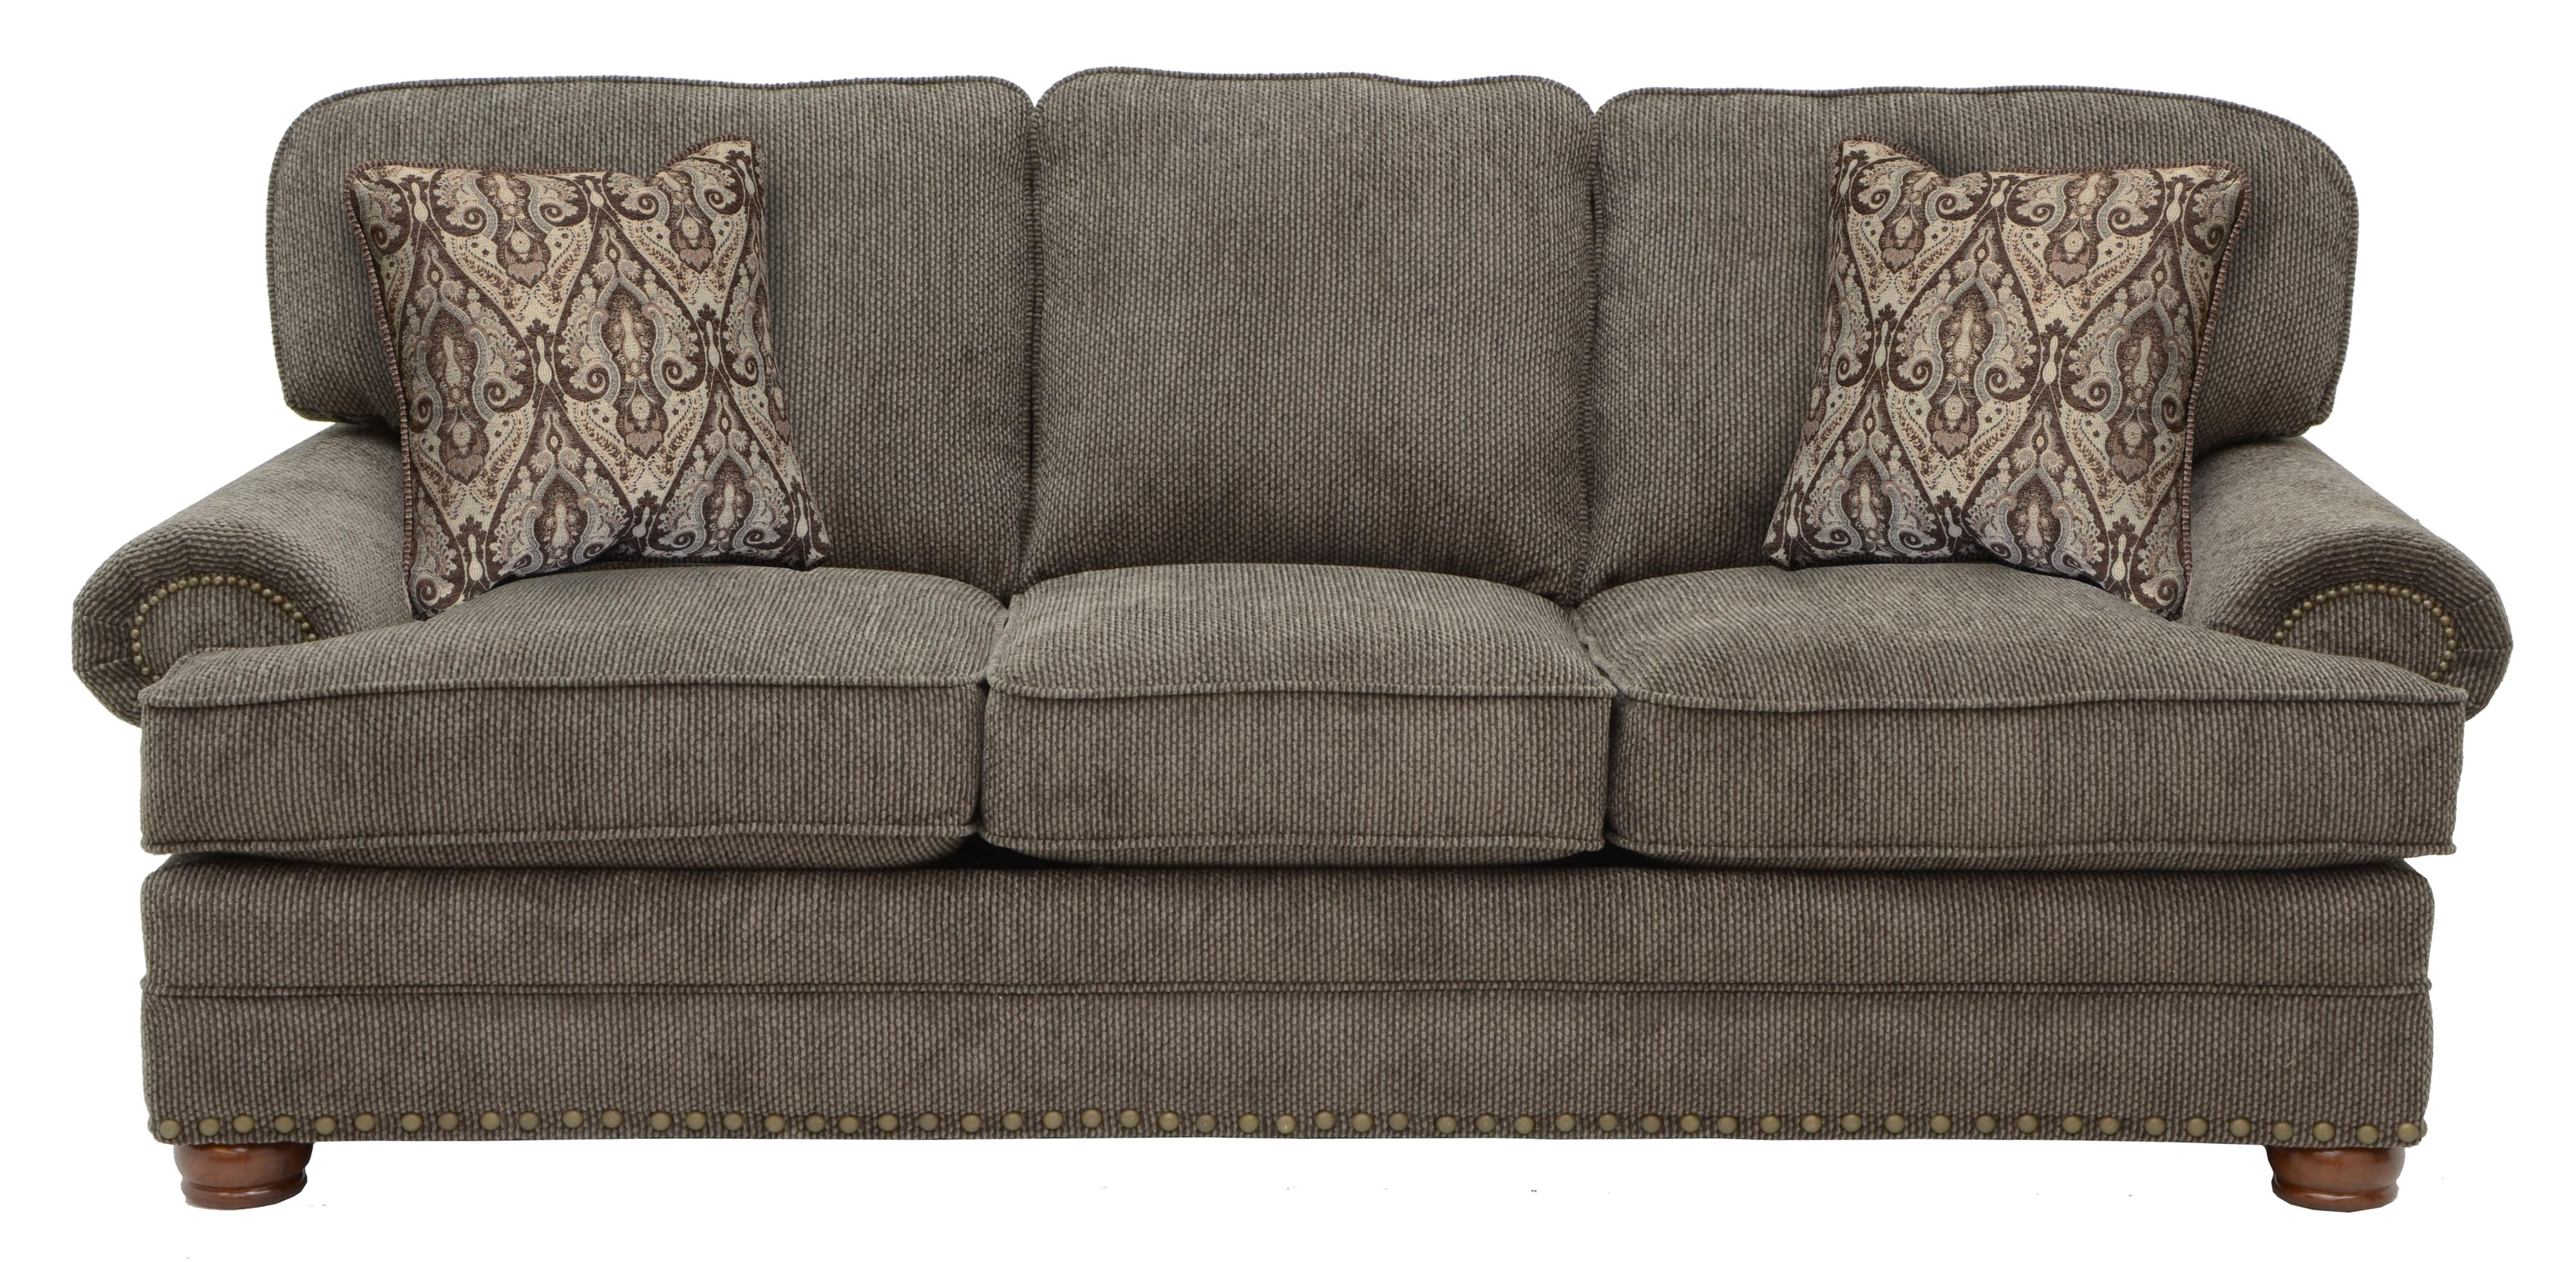 Jackson Furniture Braddock Sofa  - Item Number: 4238-03 Metal